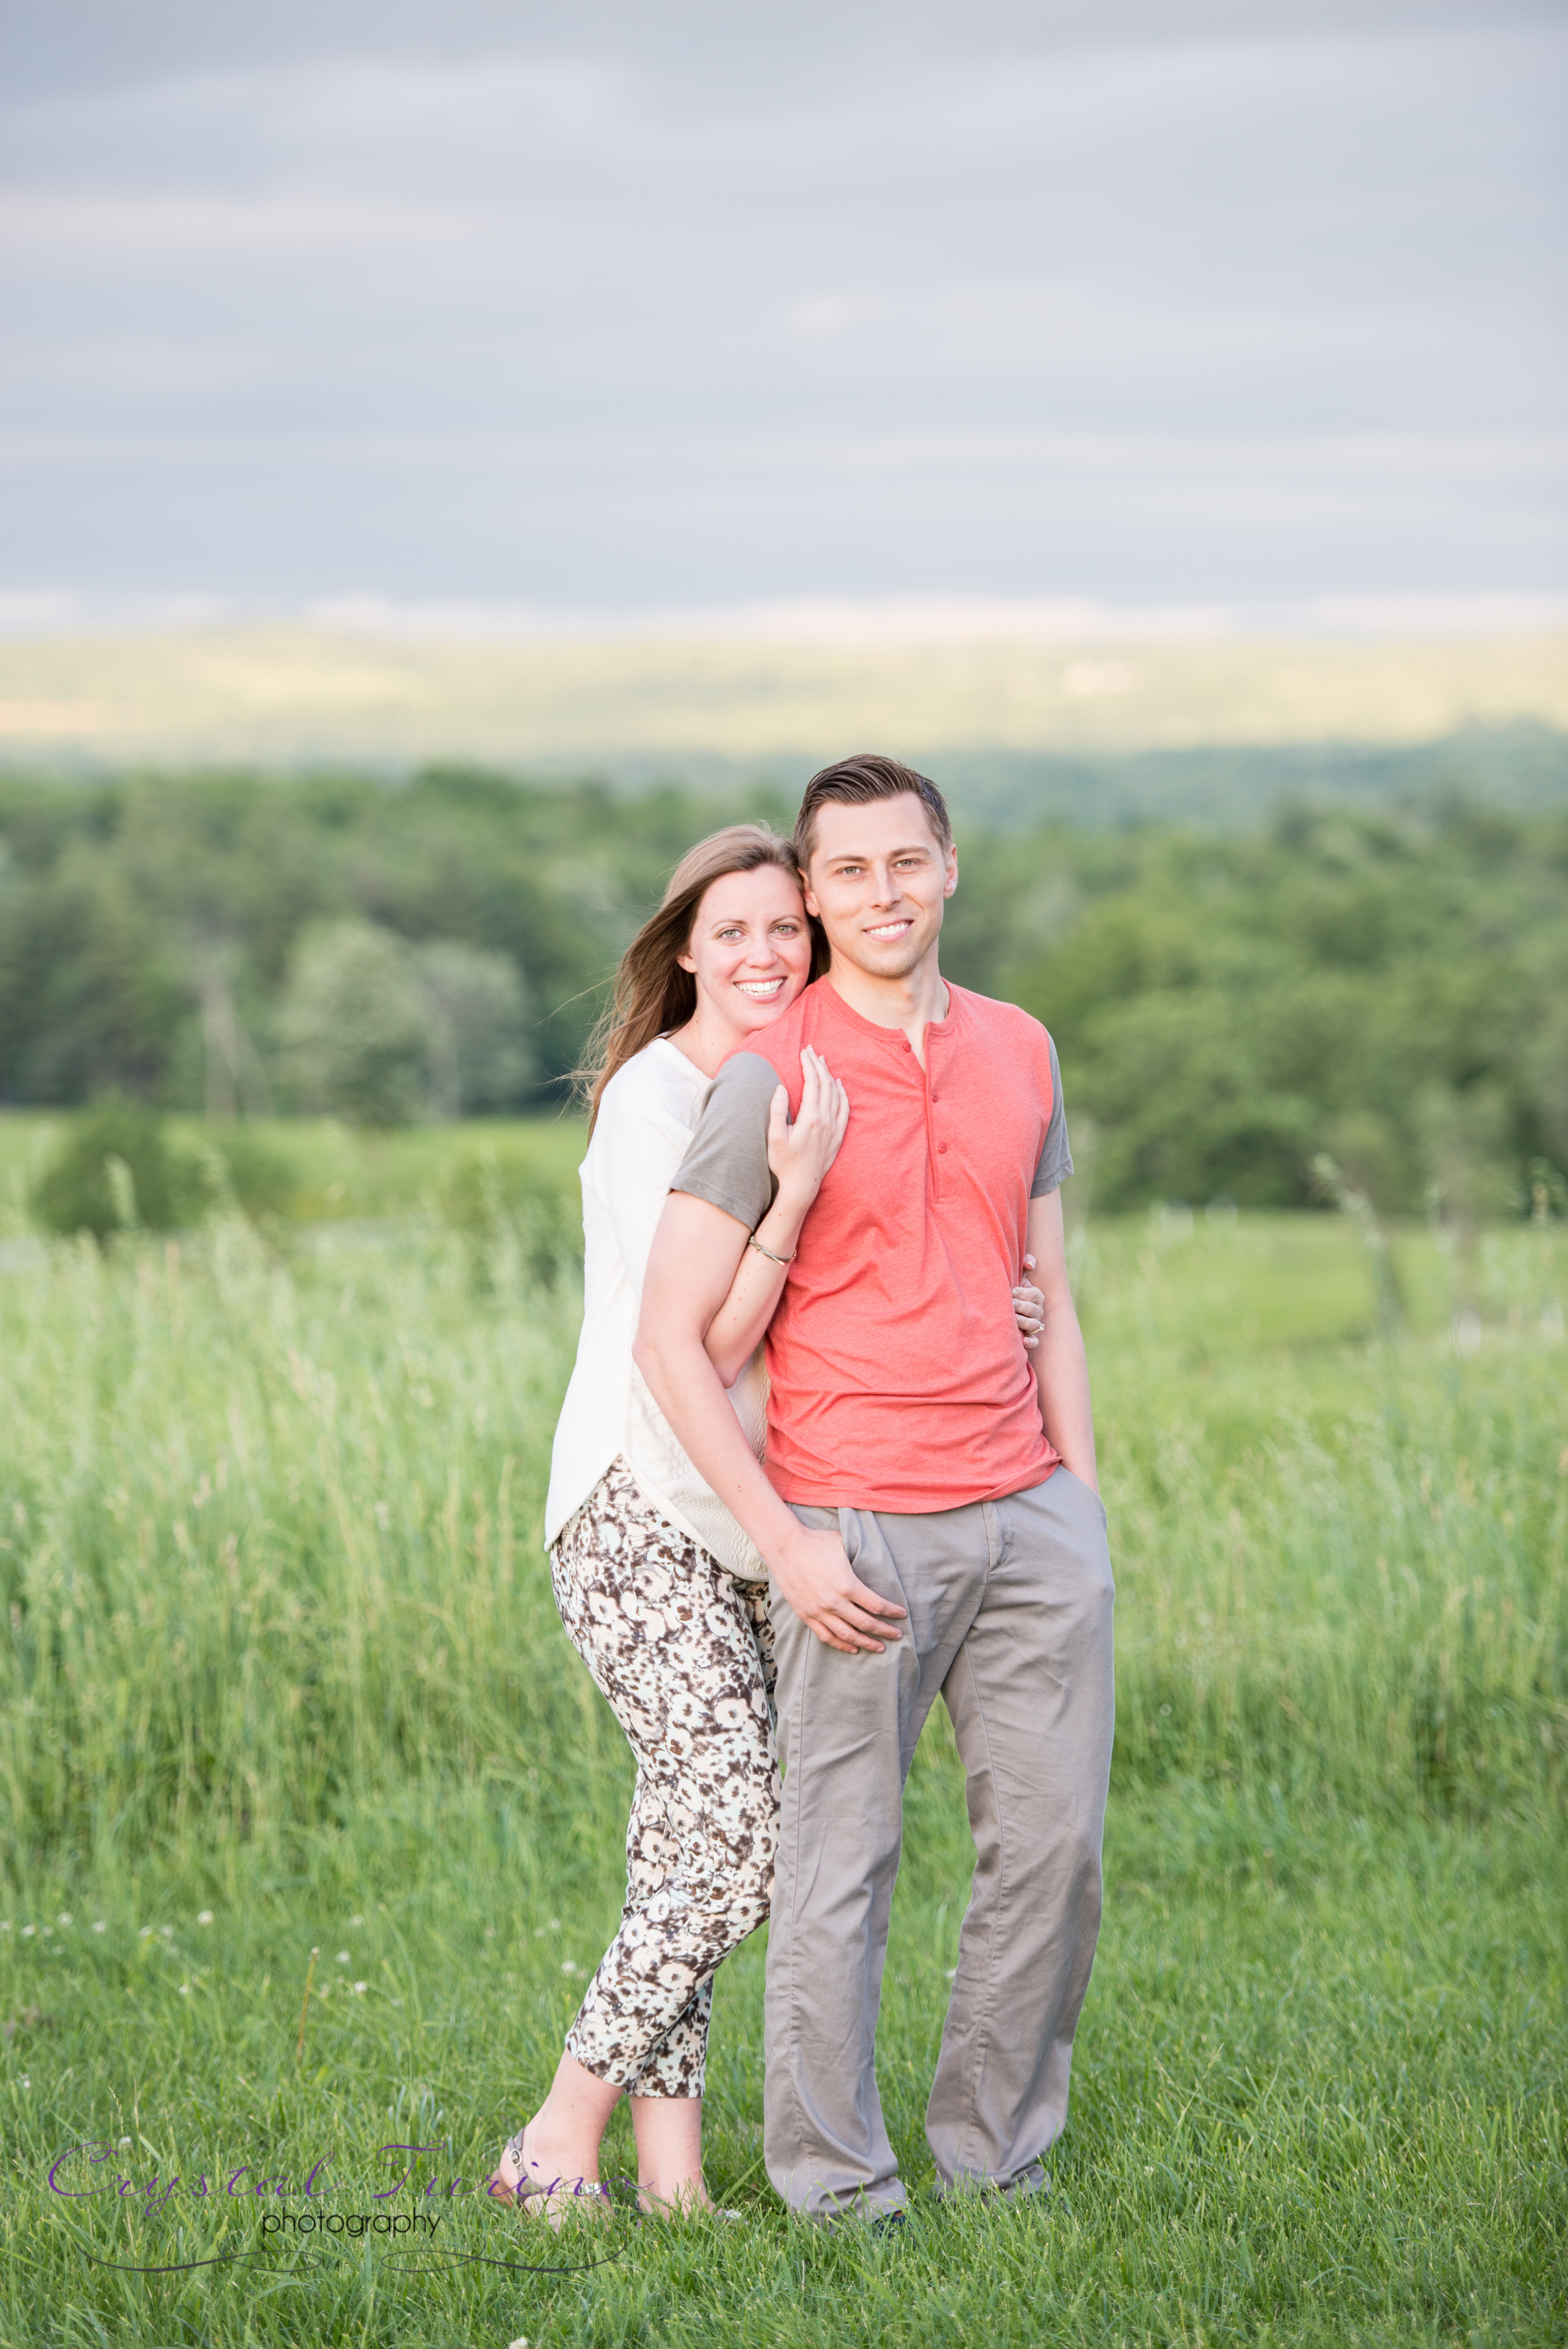 Engagement Photography | Couples - Crystal Turino Photography